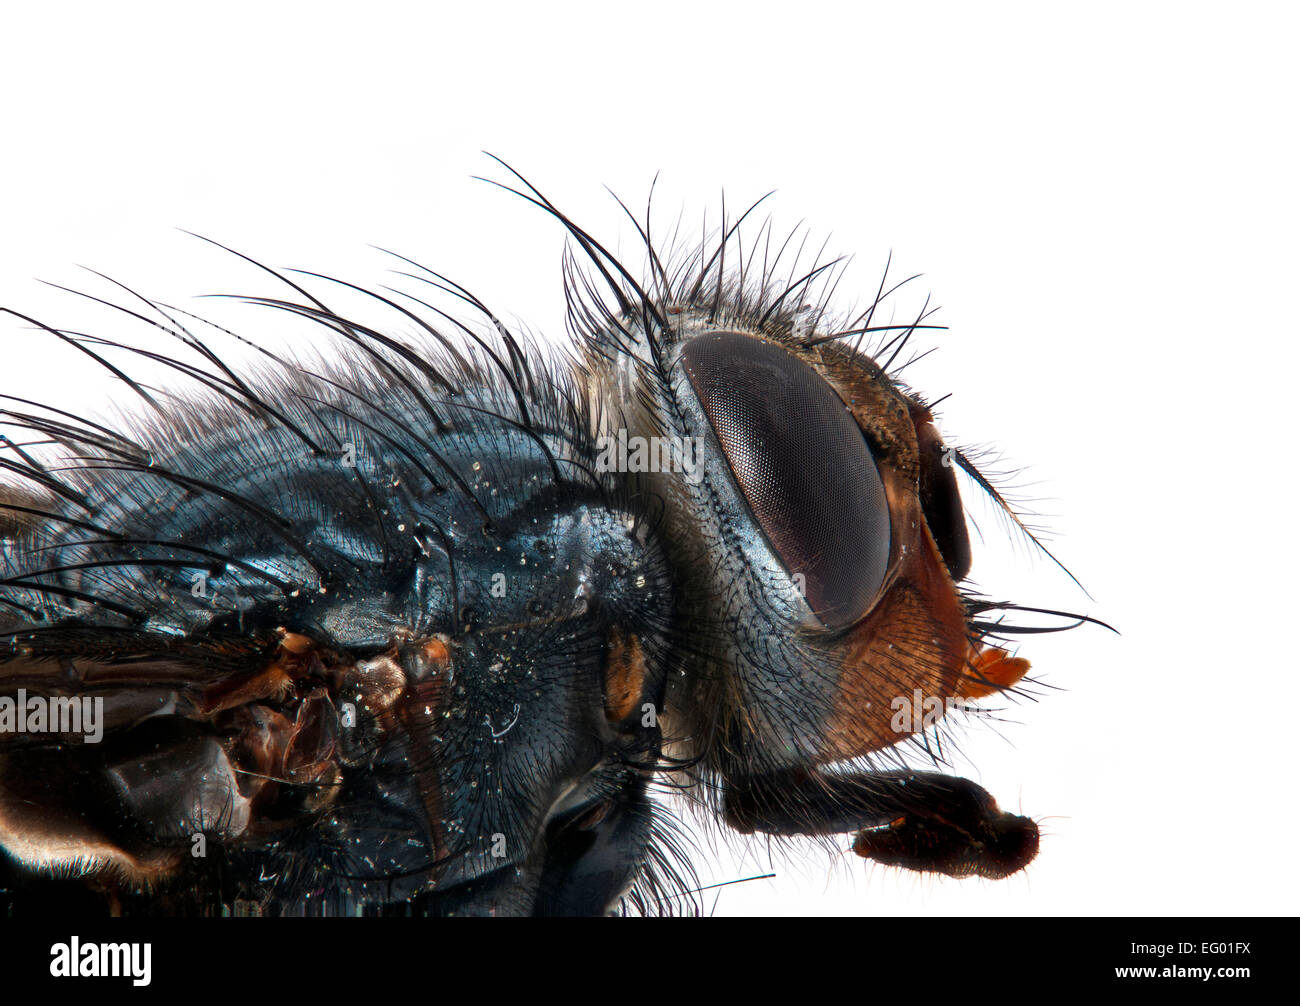 macro image of bluebottle head Calliphora vomitoria tounge protruding all the image is in focus - Stock Image